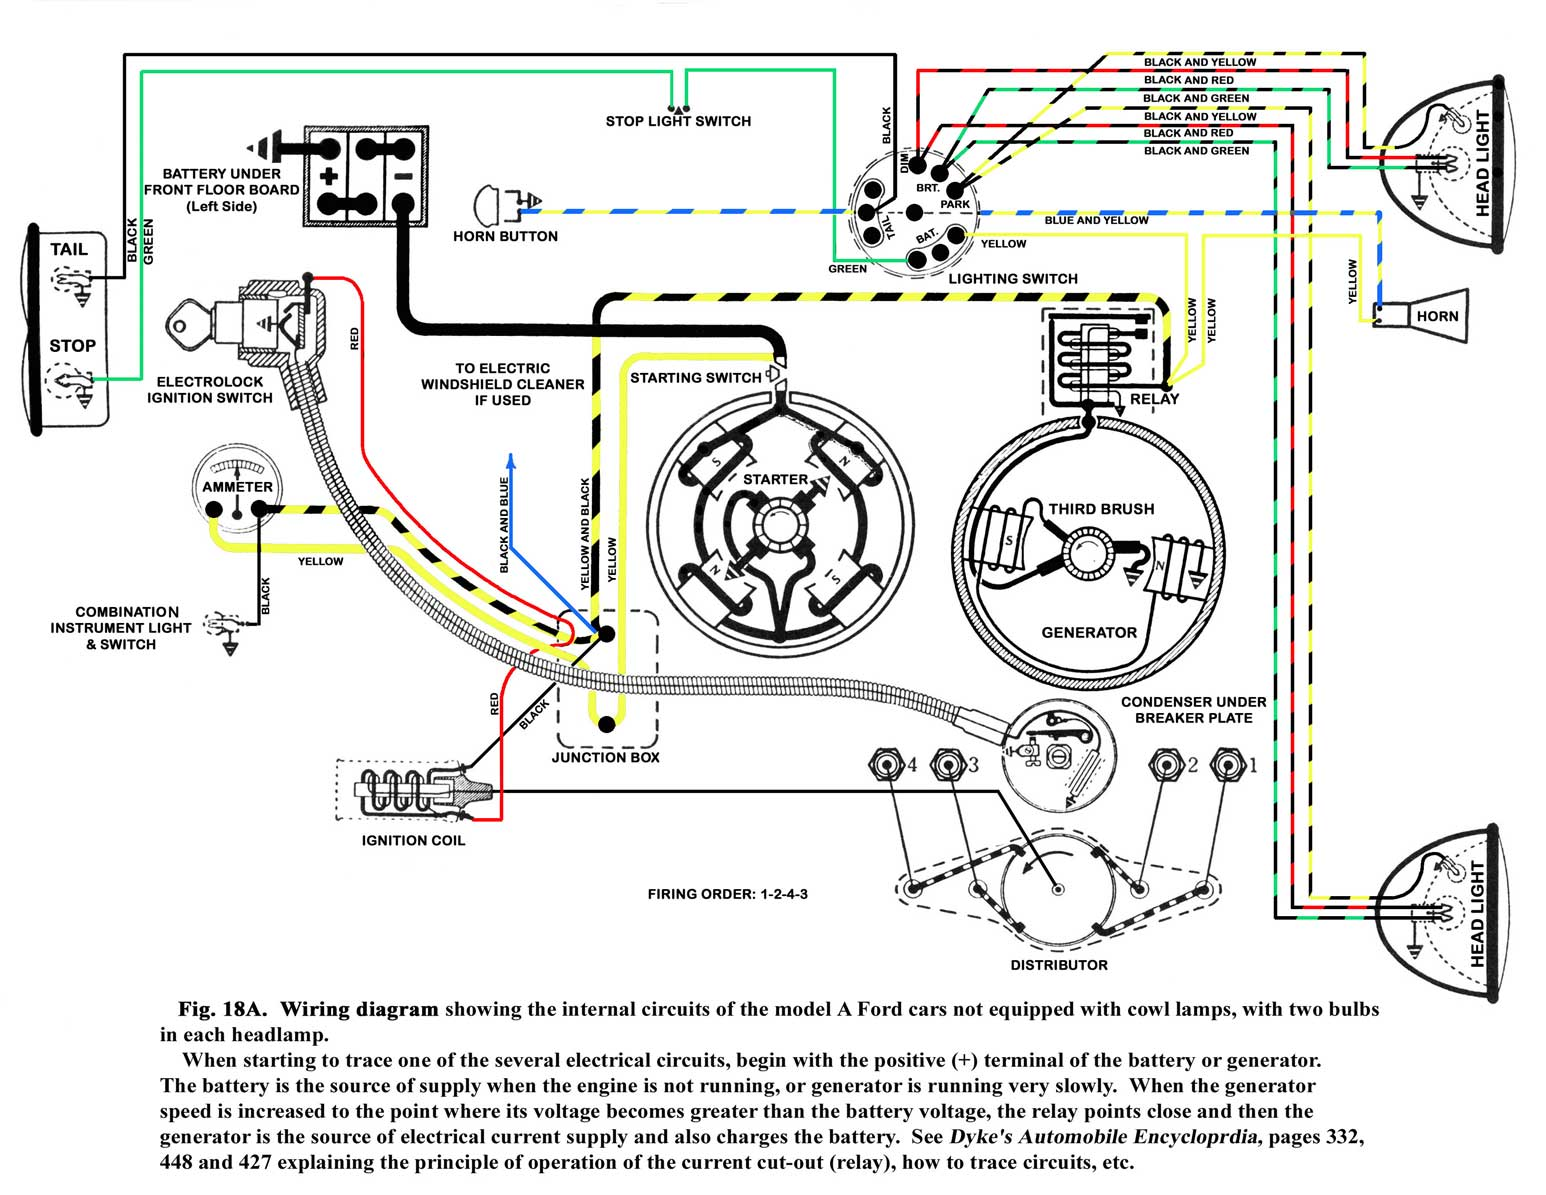 model a wiring diagram capitol a s ford model a wiring diagram [ 1546 x 1195 Pixel ]